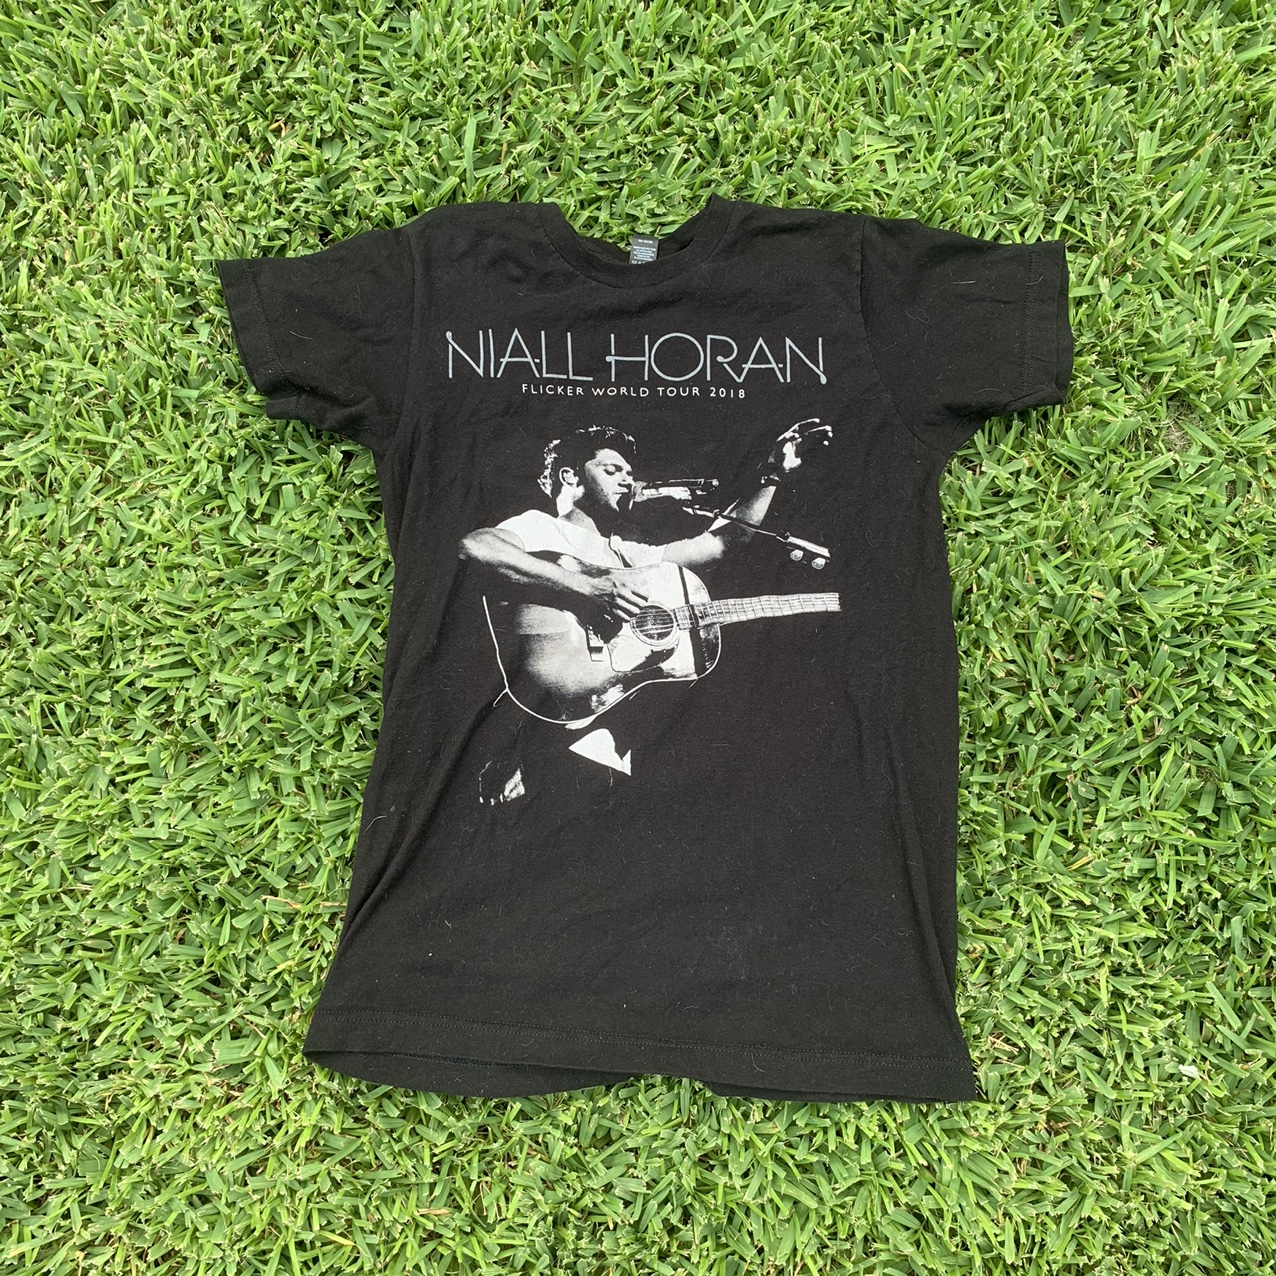 Niall Horan 2018 Flicker World Tour Merch Tee Shirt Depop